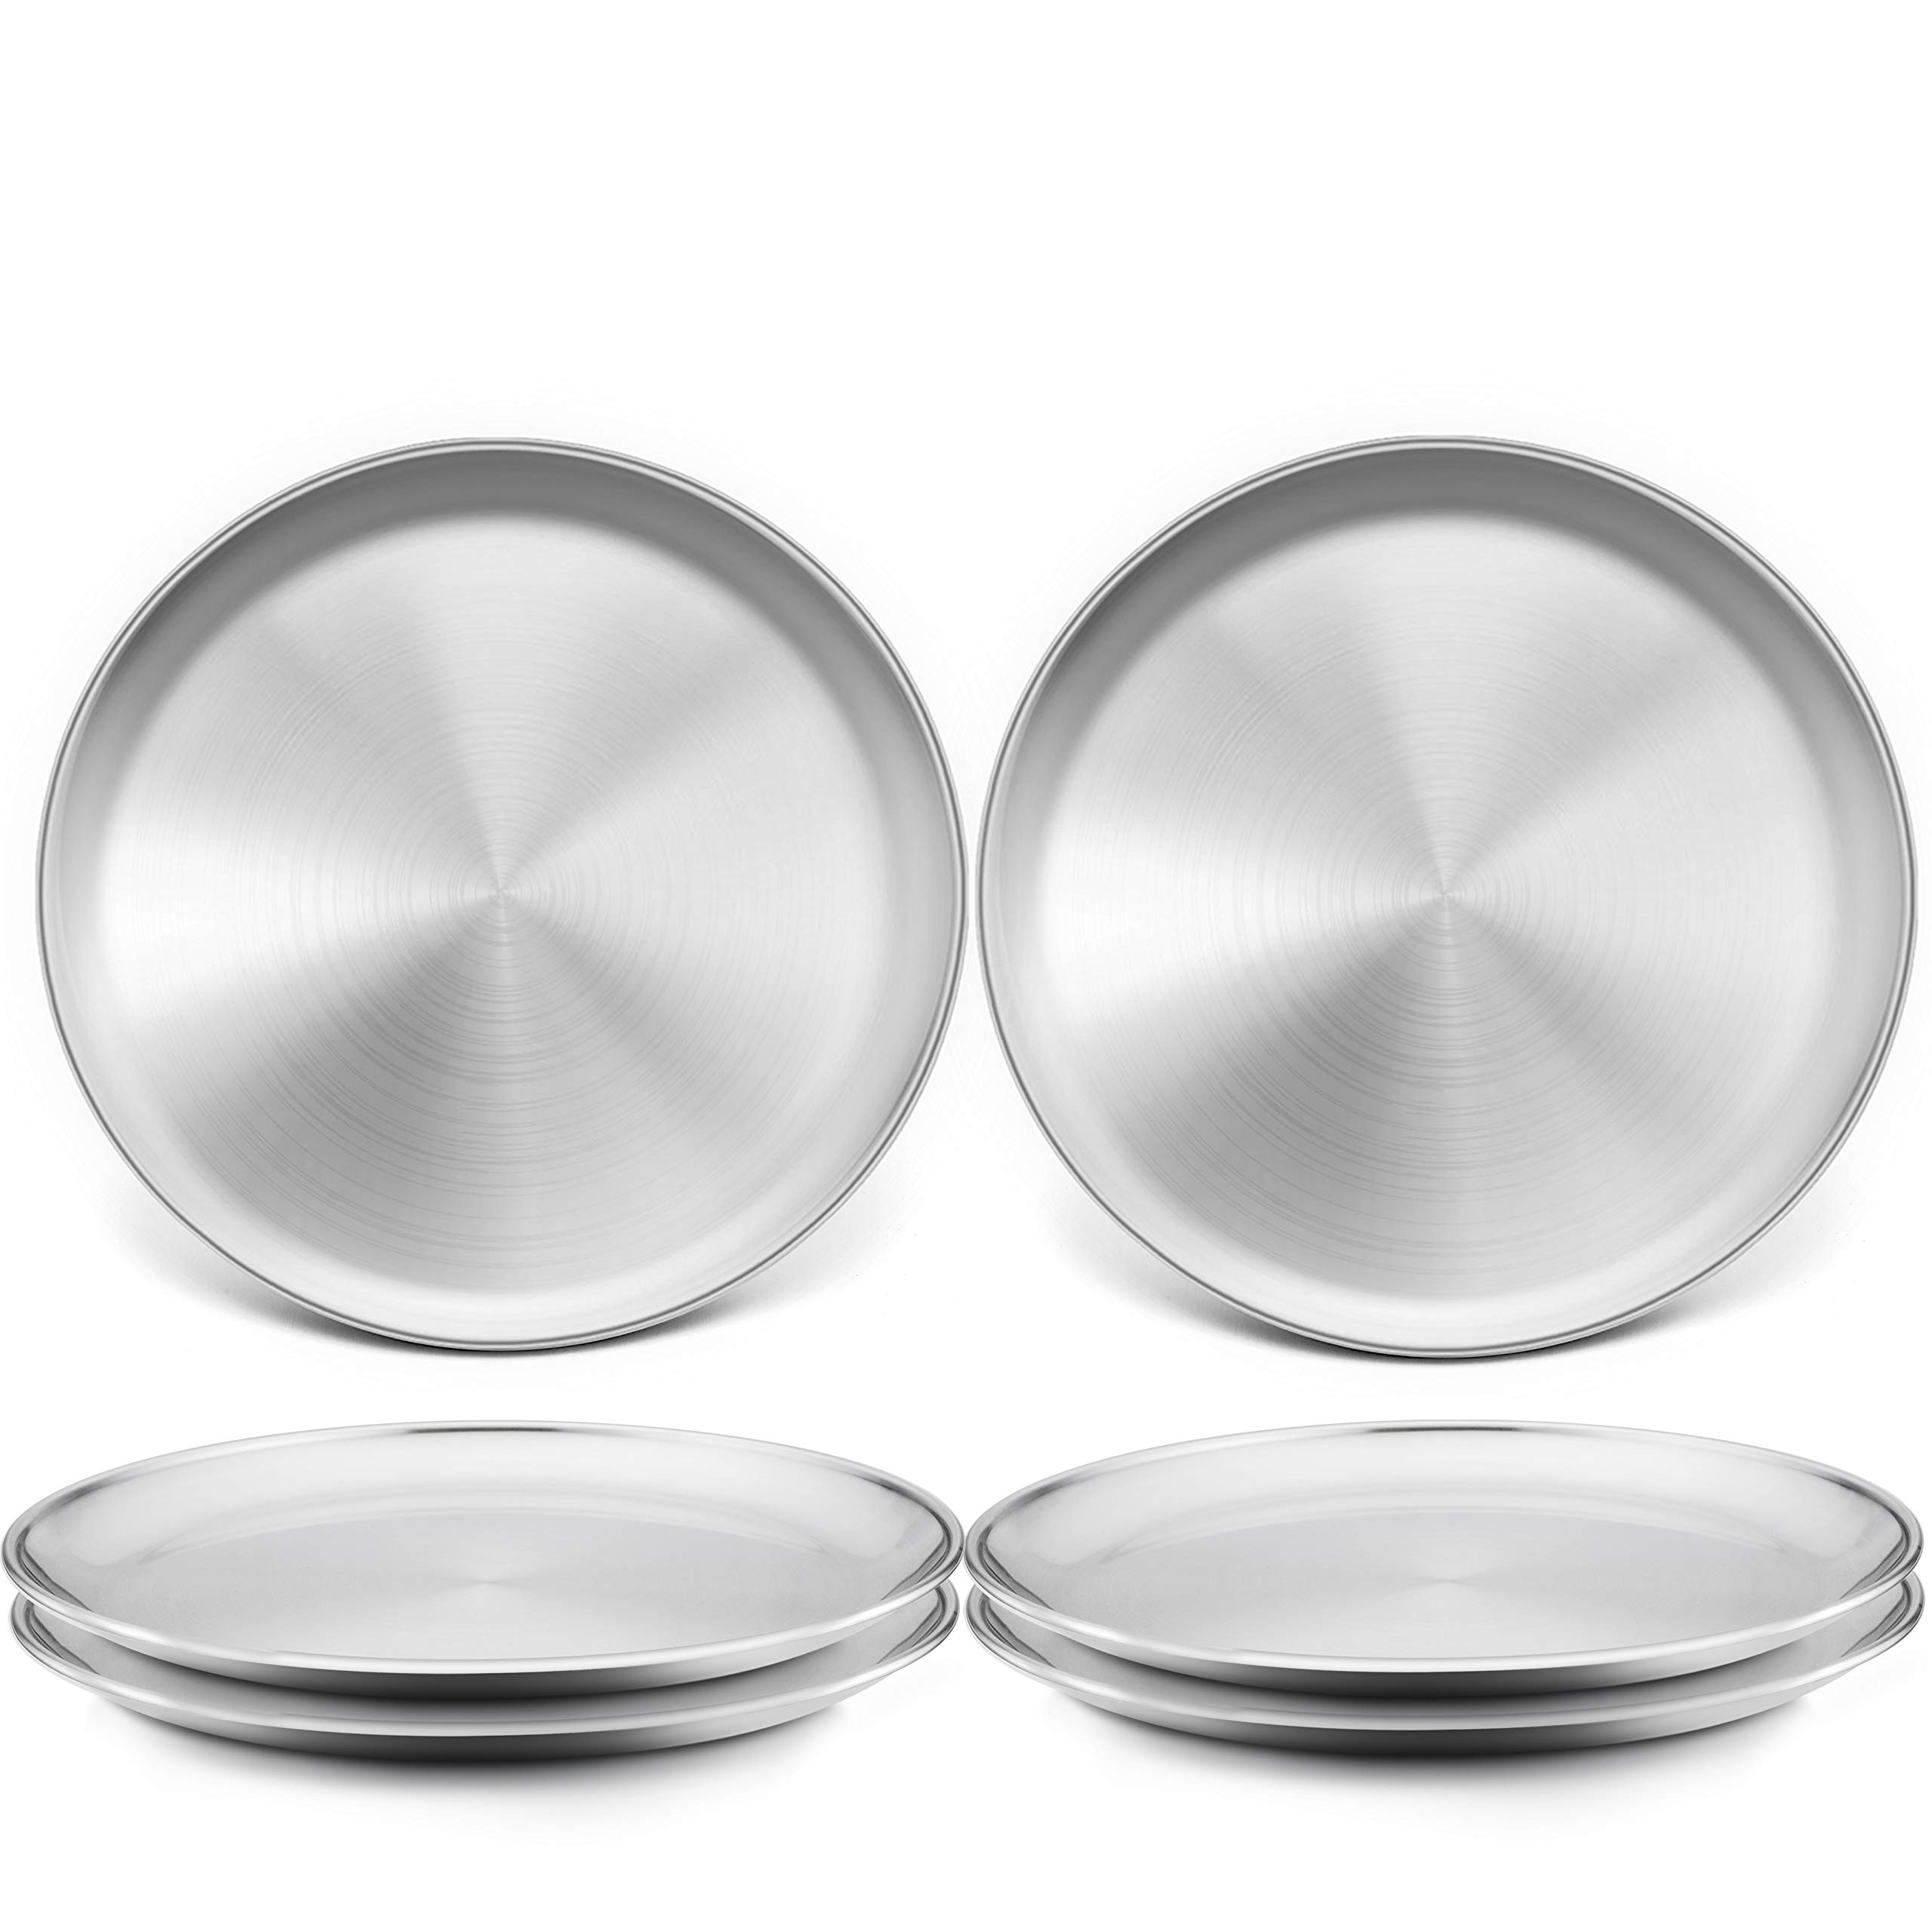 TeamFar Toddler Plates, 8 Inch Stainless Steel Kids Dinner Metal Plates, Round Serving Salad Plates for Camping Outdoor Party, BPA Free & Healthy, Sturdy & Heavy Duty, Dishwasher Safe - Set of 6 by TeamFar